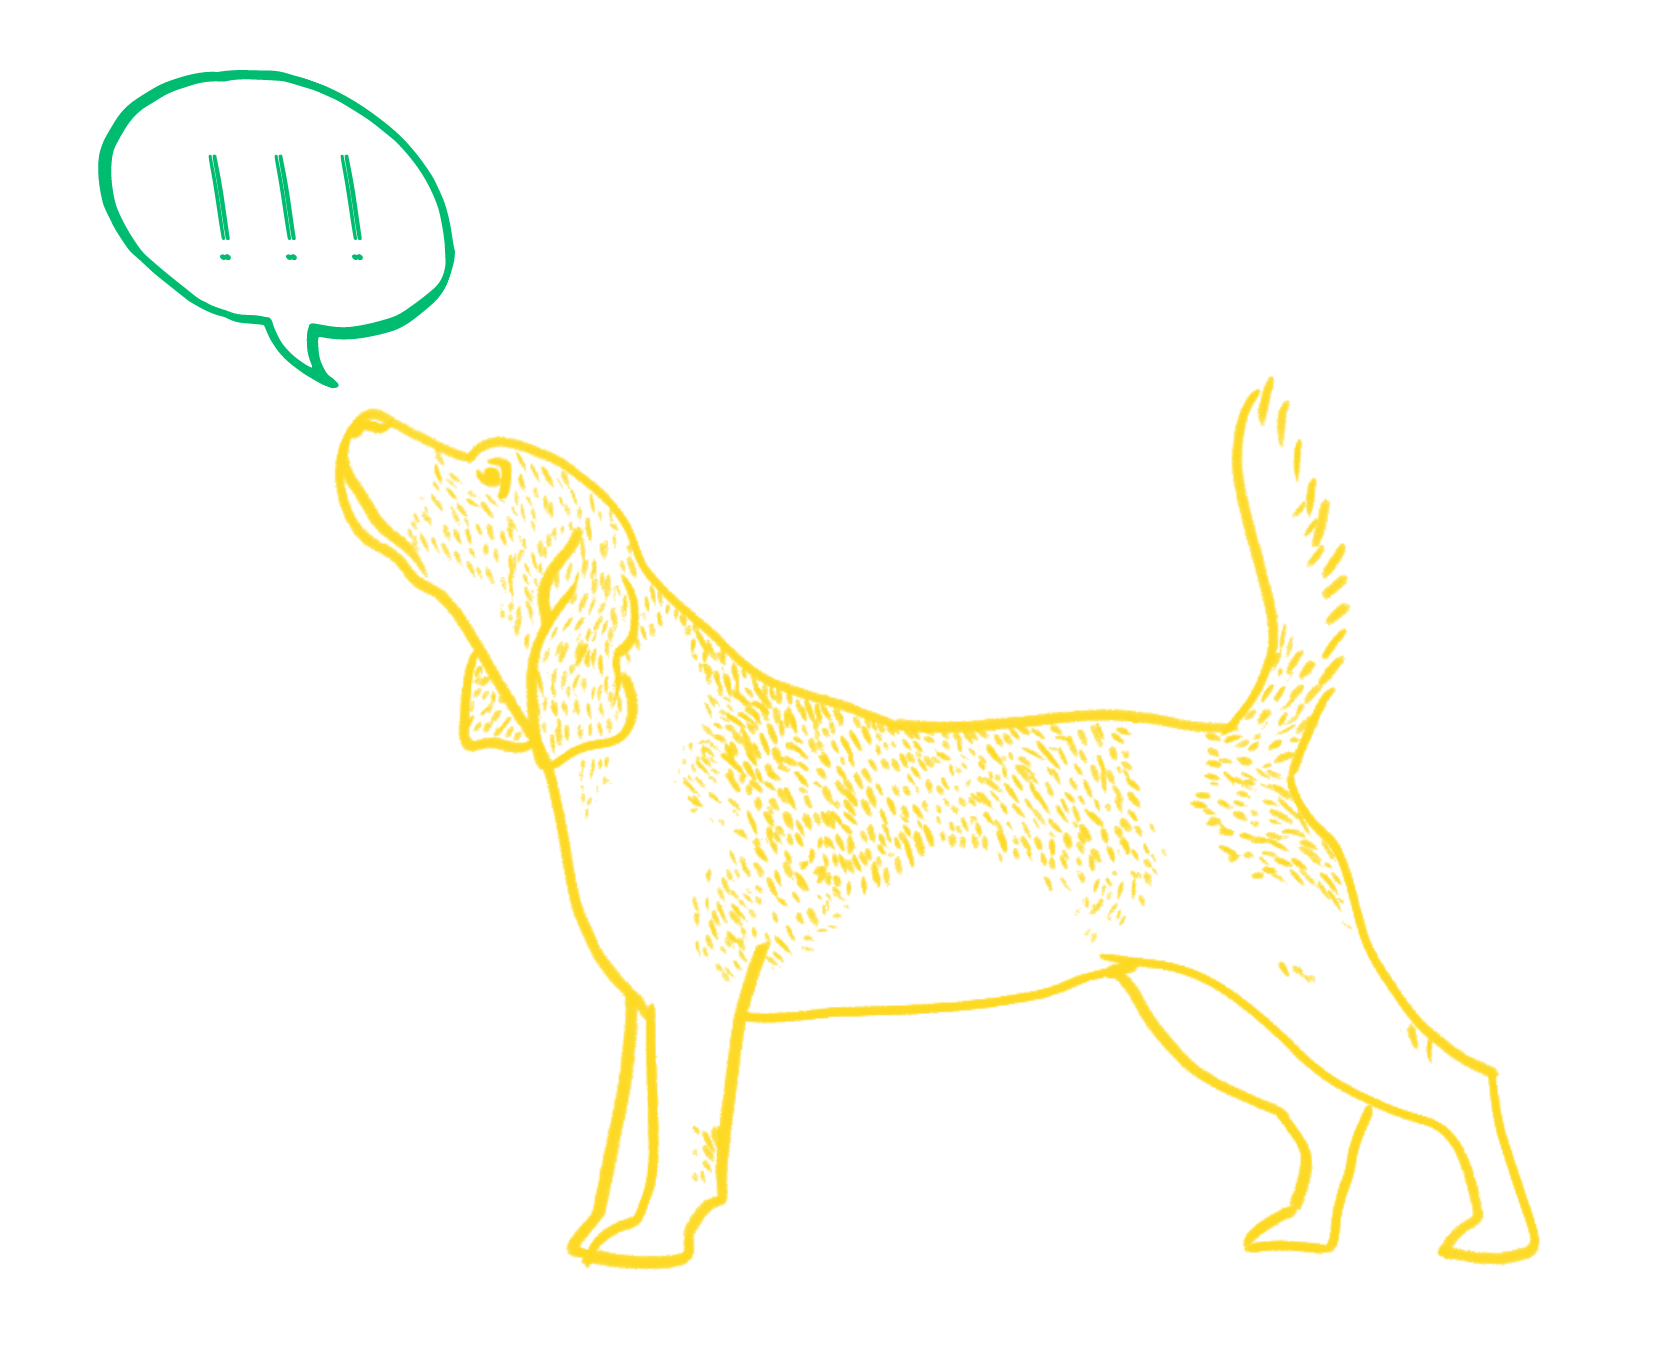 A sketch of a beagle with a speech bubble filled with exclamation points above his head